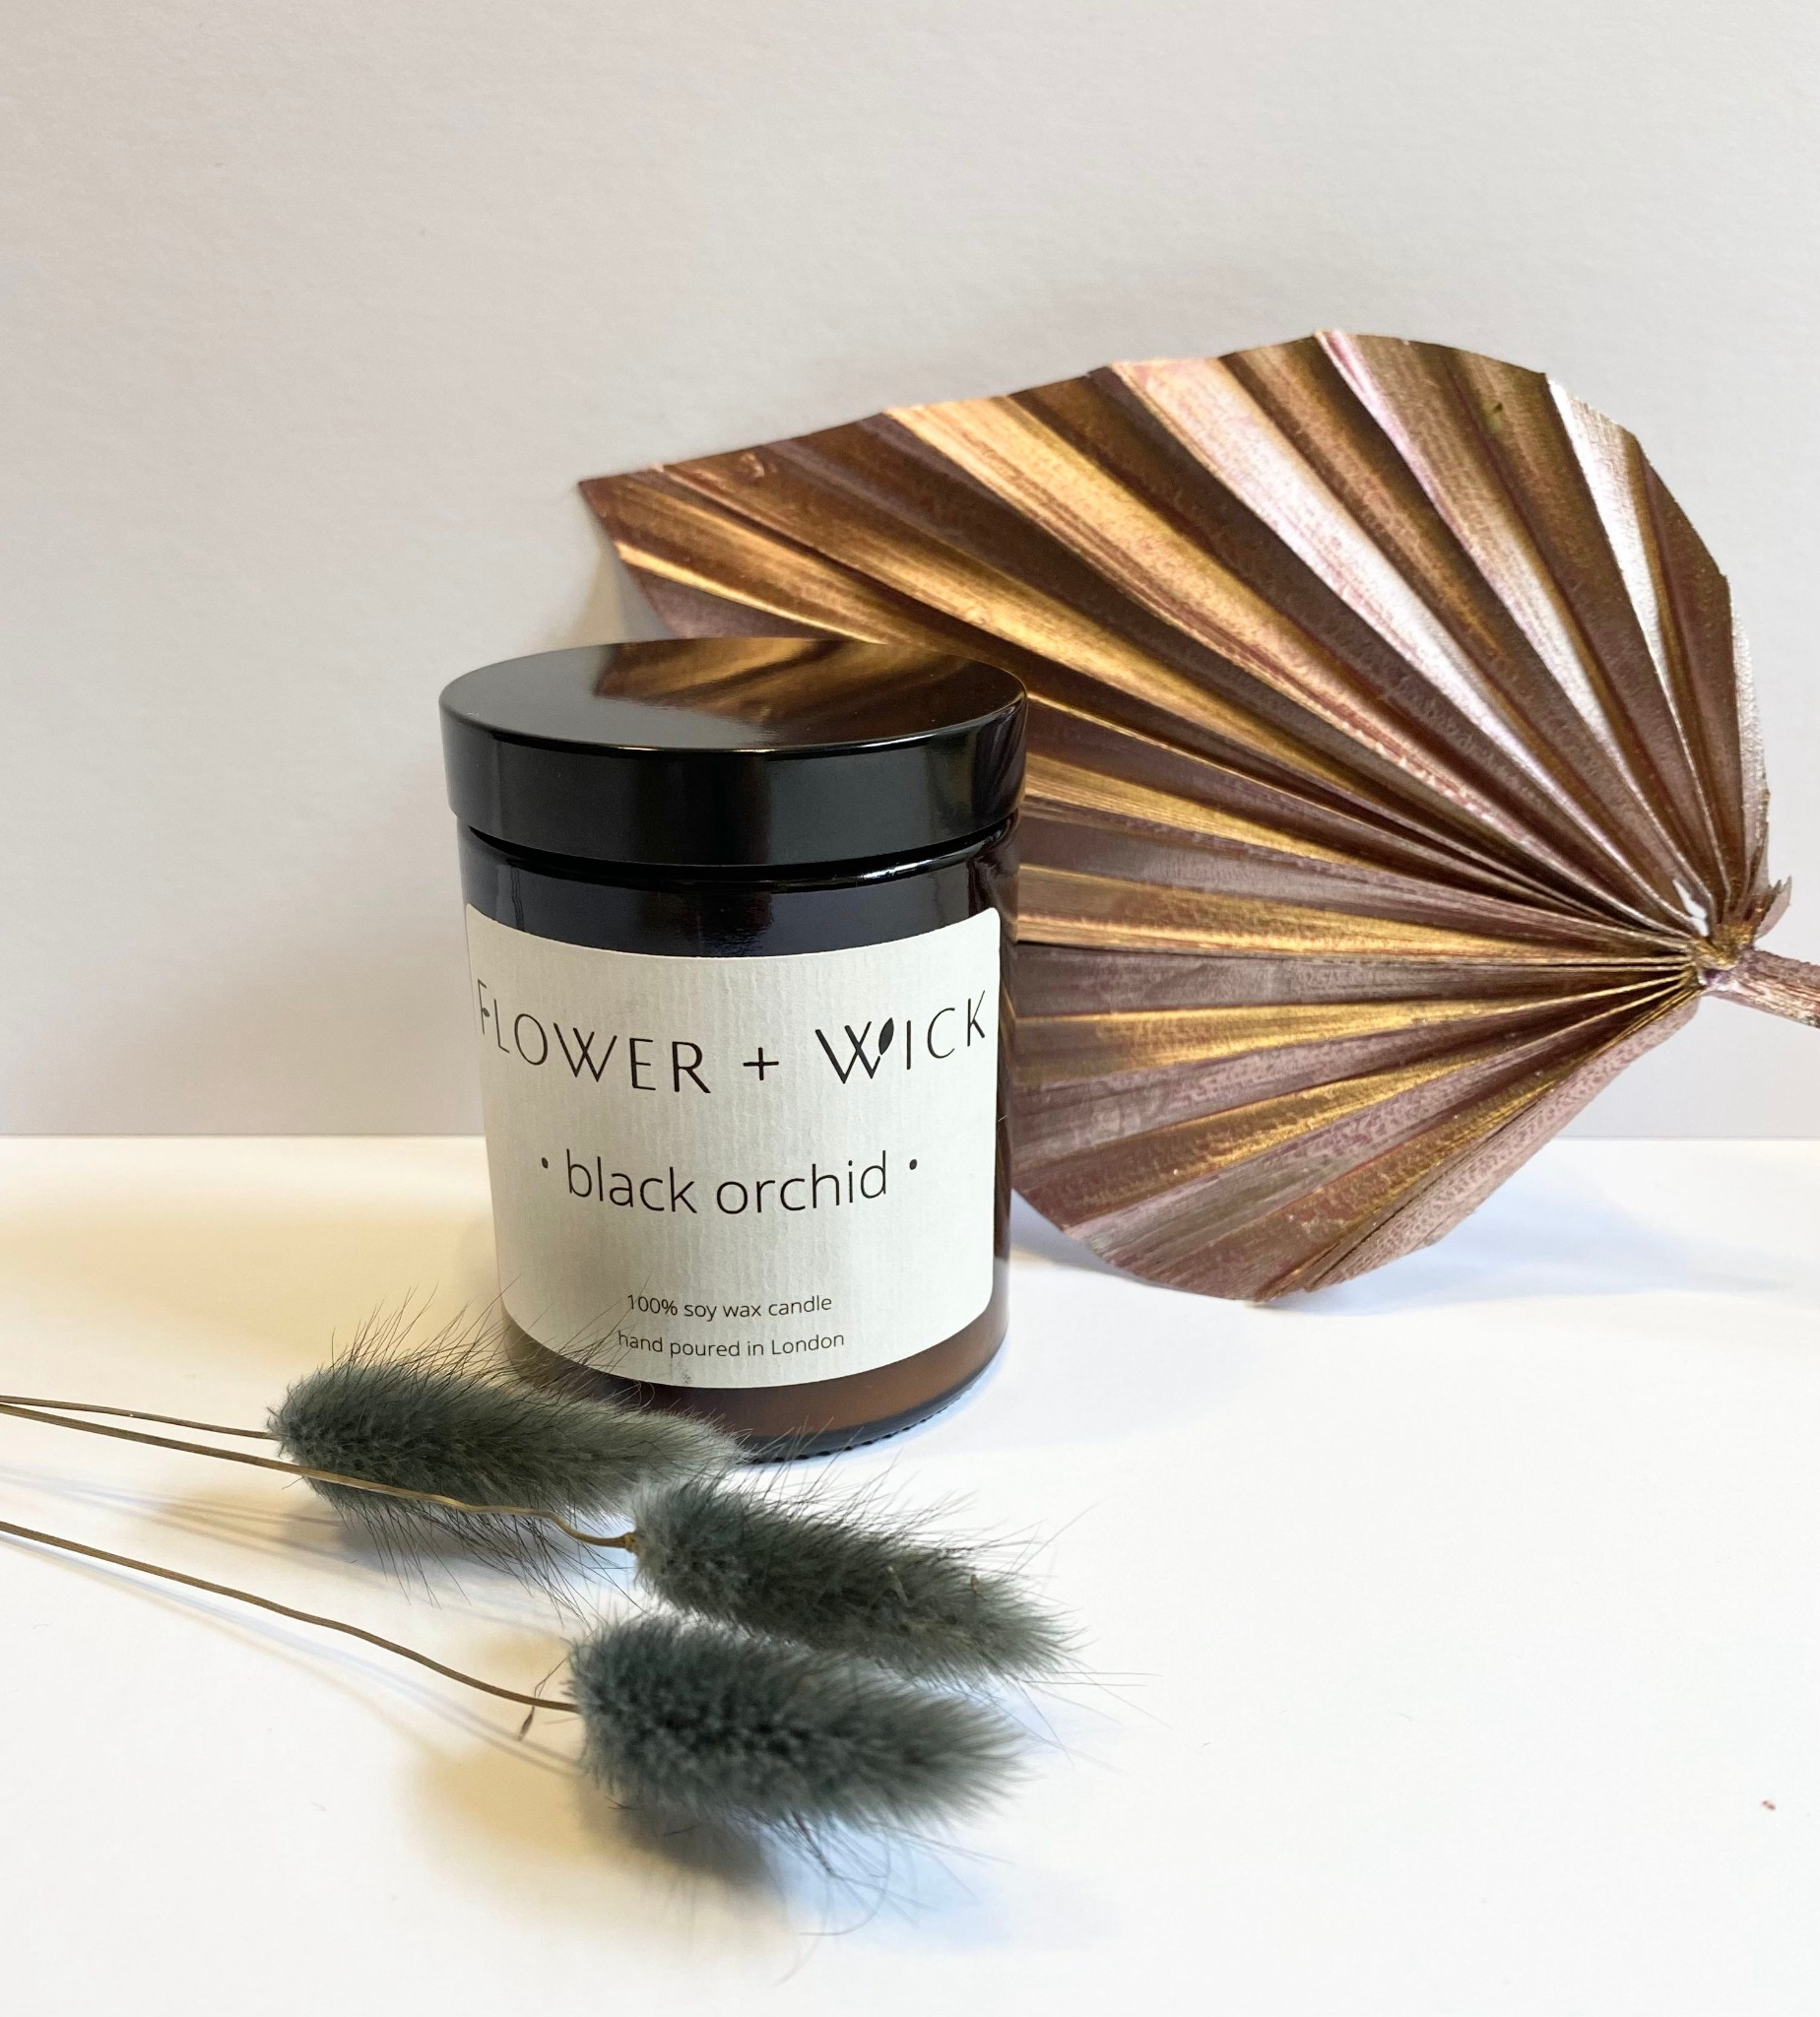 Flower + Wick: Black Orchid scented soy candle